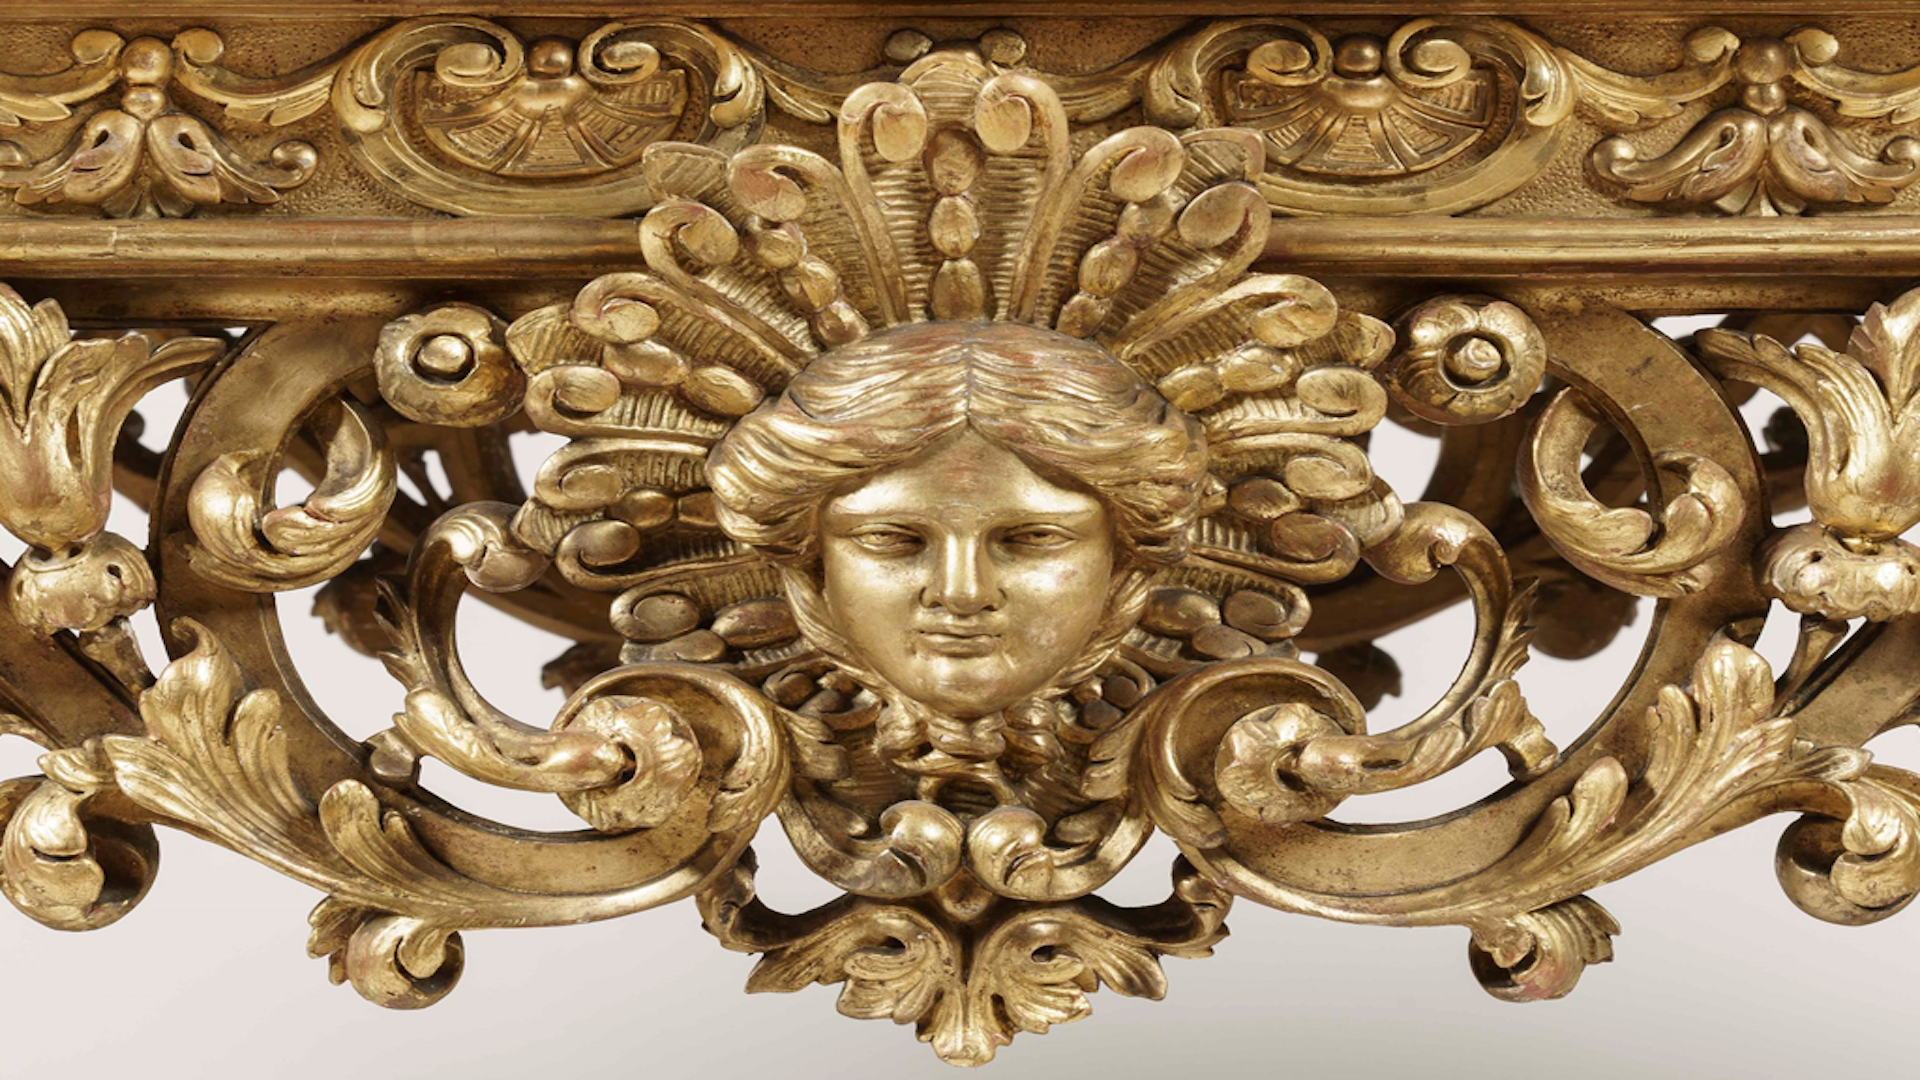 An Exceptional Giltwood Table de Milieu in the Louis XIV Style (32434)